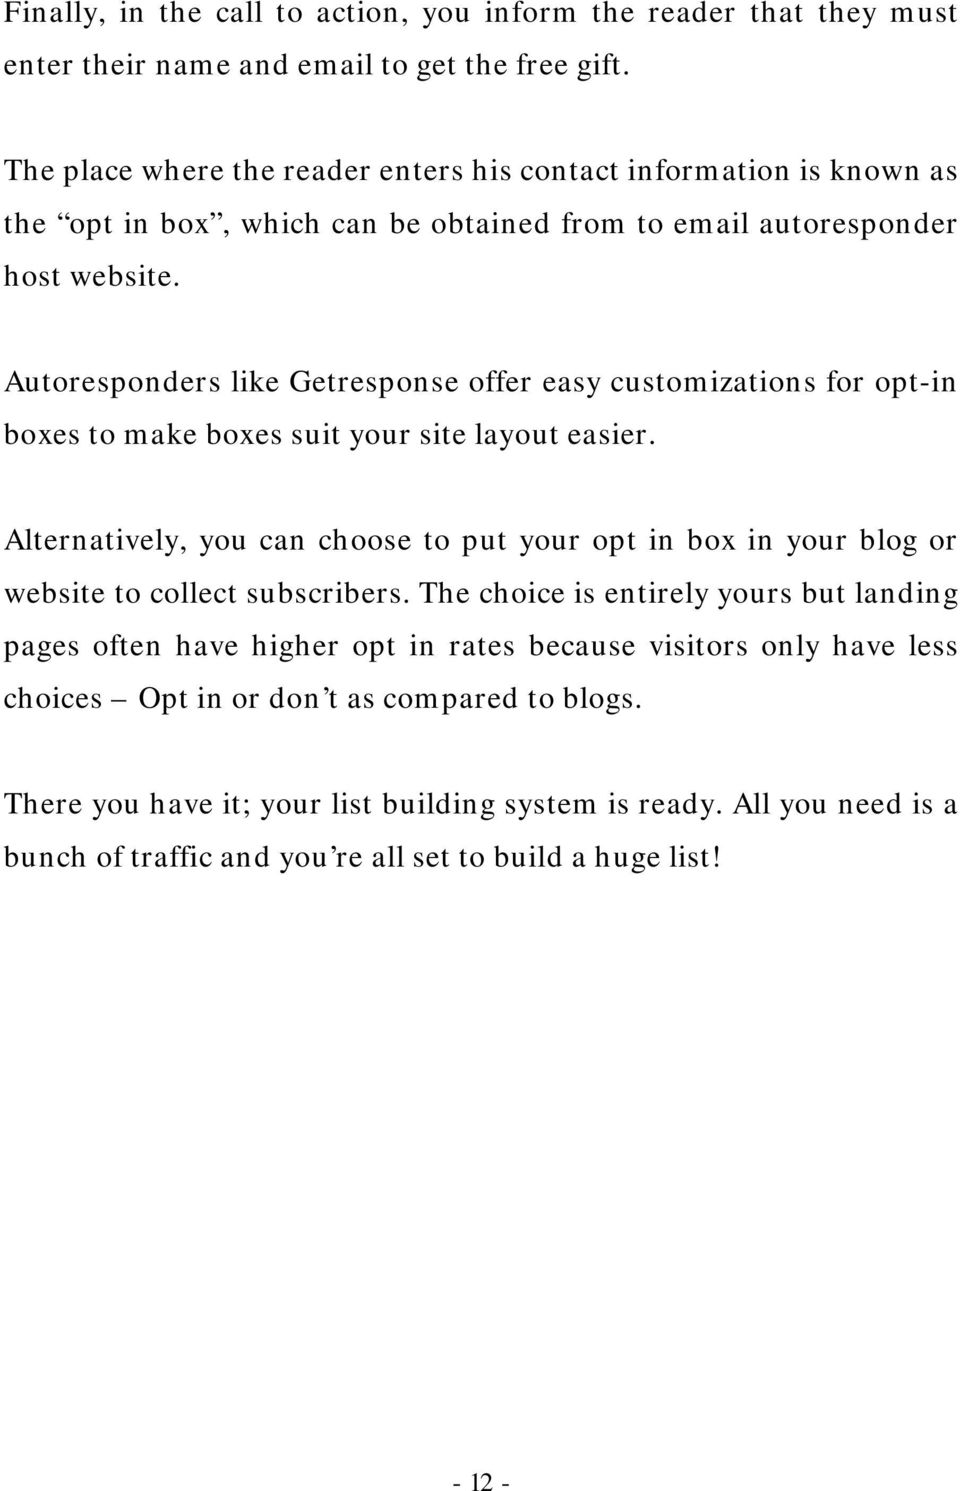 Autoresponders like Getresponse offer easy customizations for opt-in boxes to make boxes suit your site layout easier.